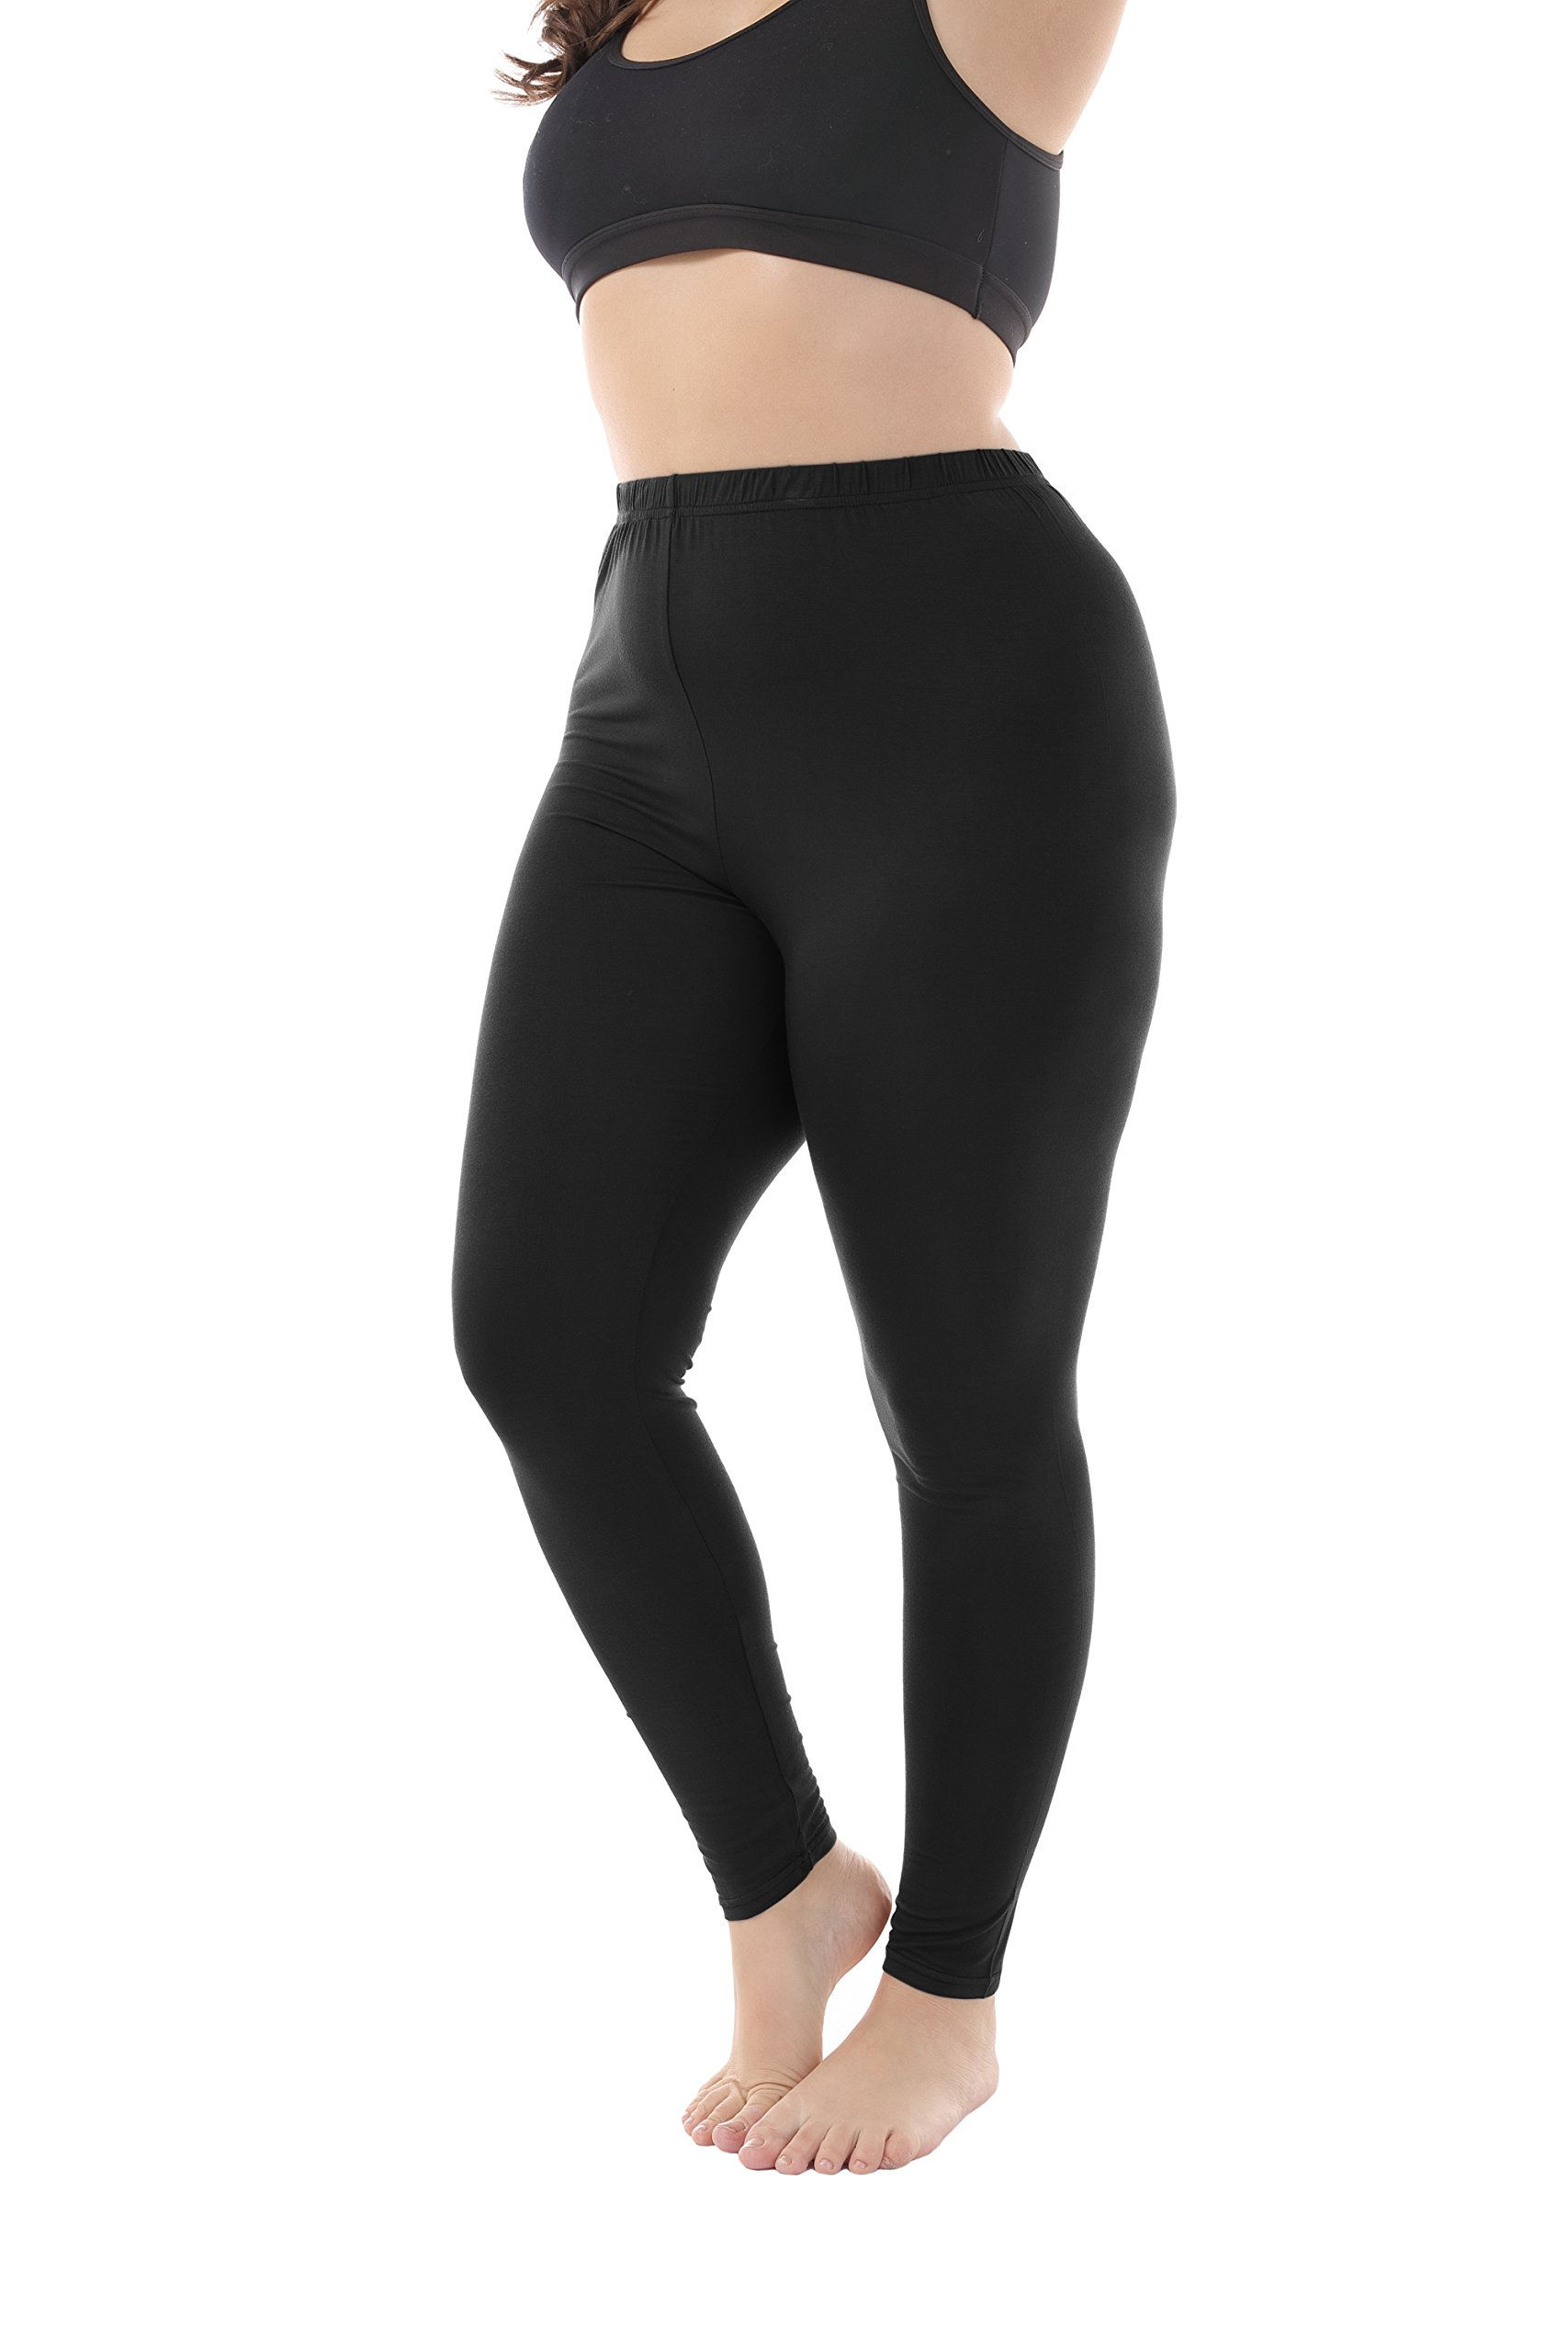 Zerdocean Women's Plus Size Modal Lightweight Full Length Leggings Black 3X